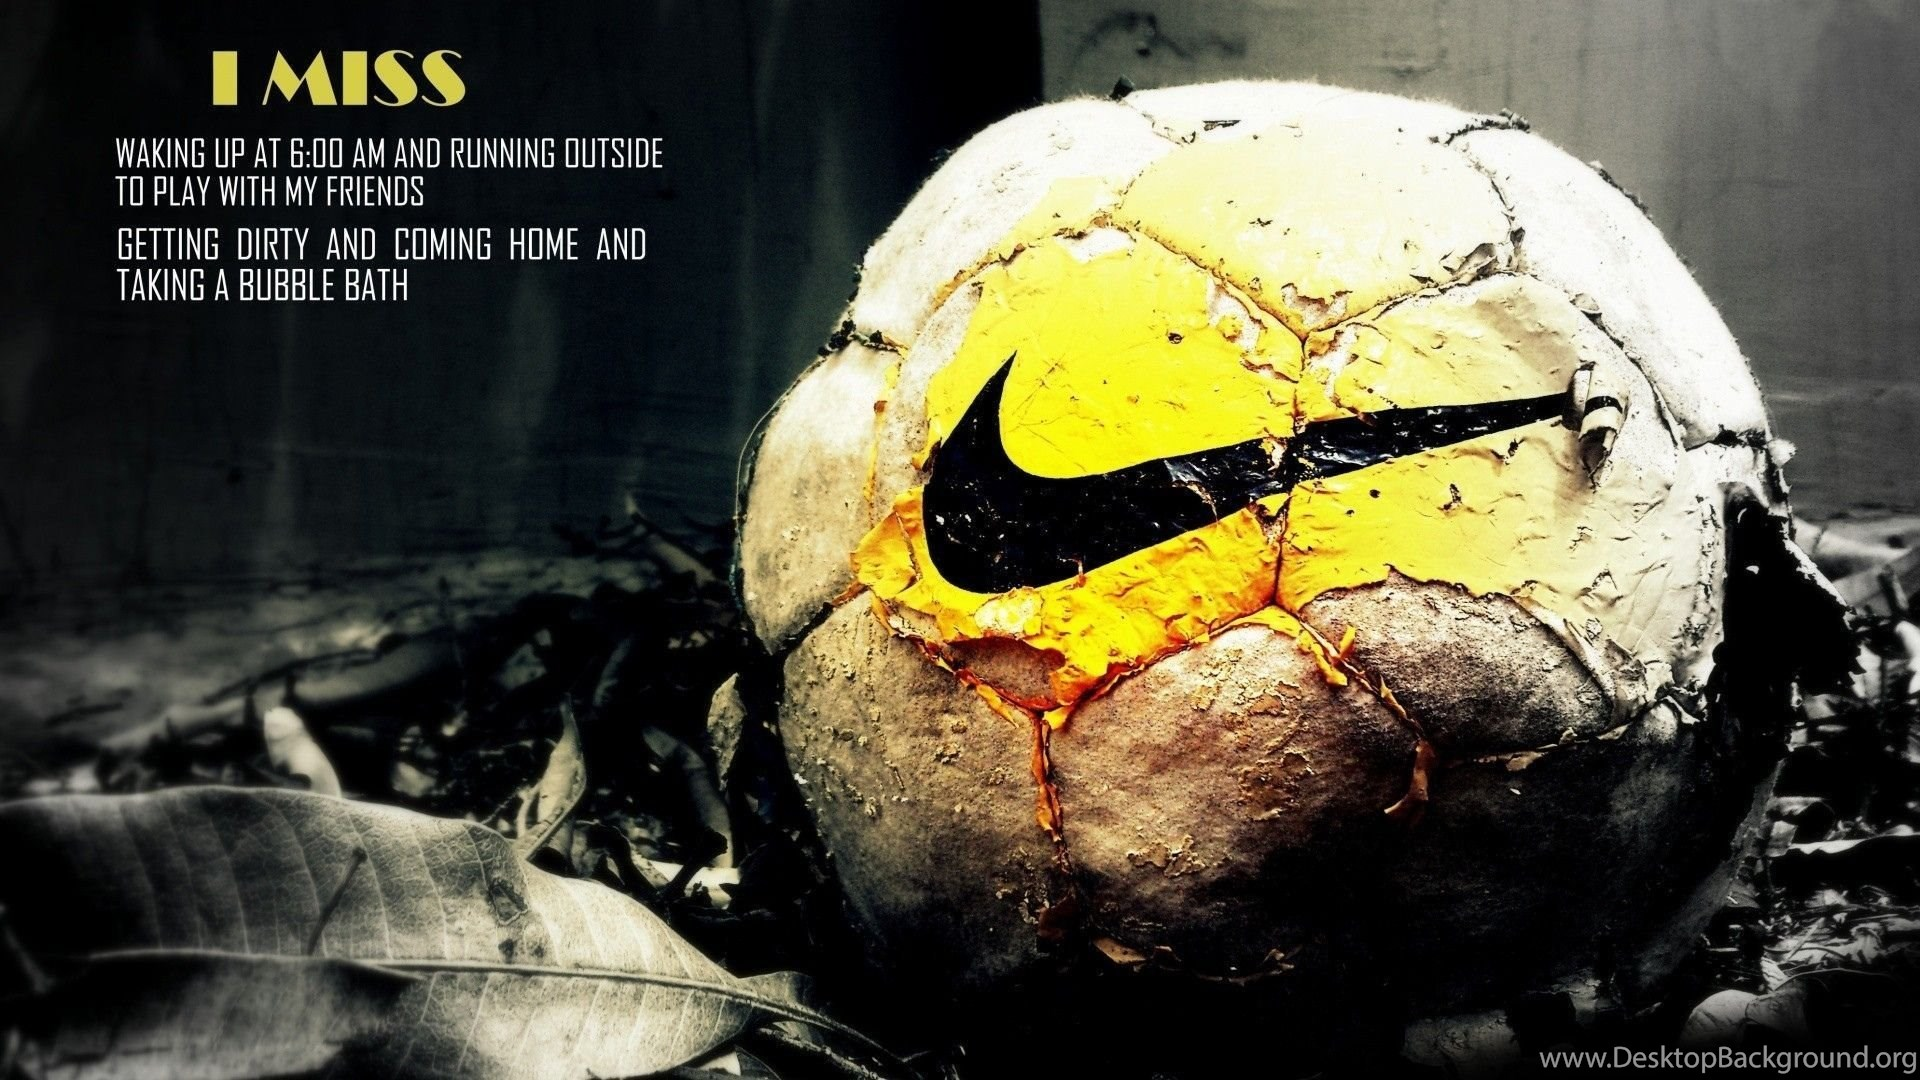 Nike Soccer Cool Backgrounds Wallpapers 3147 Hd Wallpapers Site Desktop Background